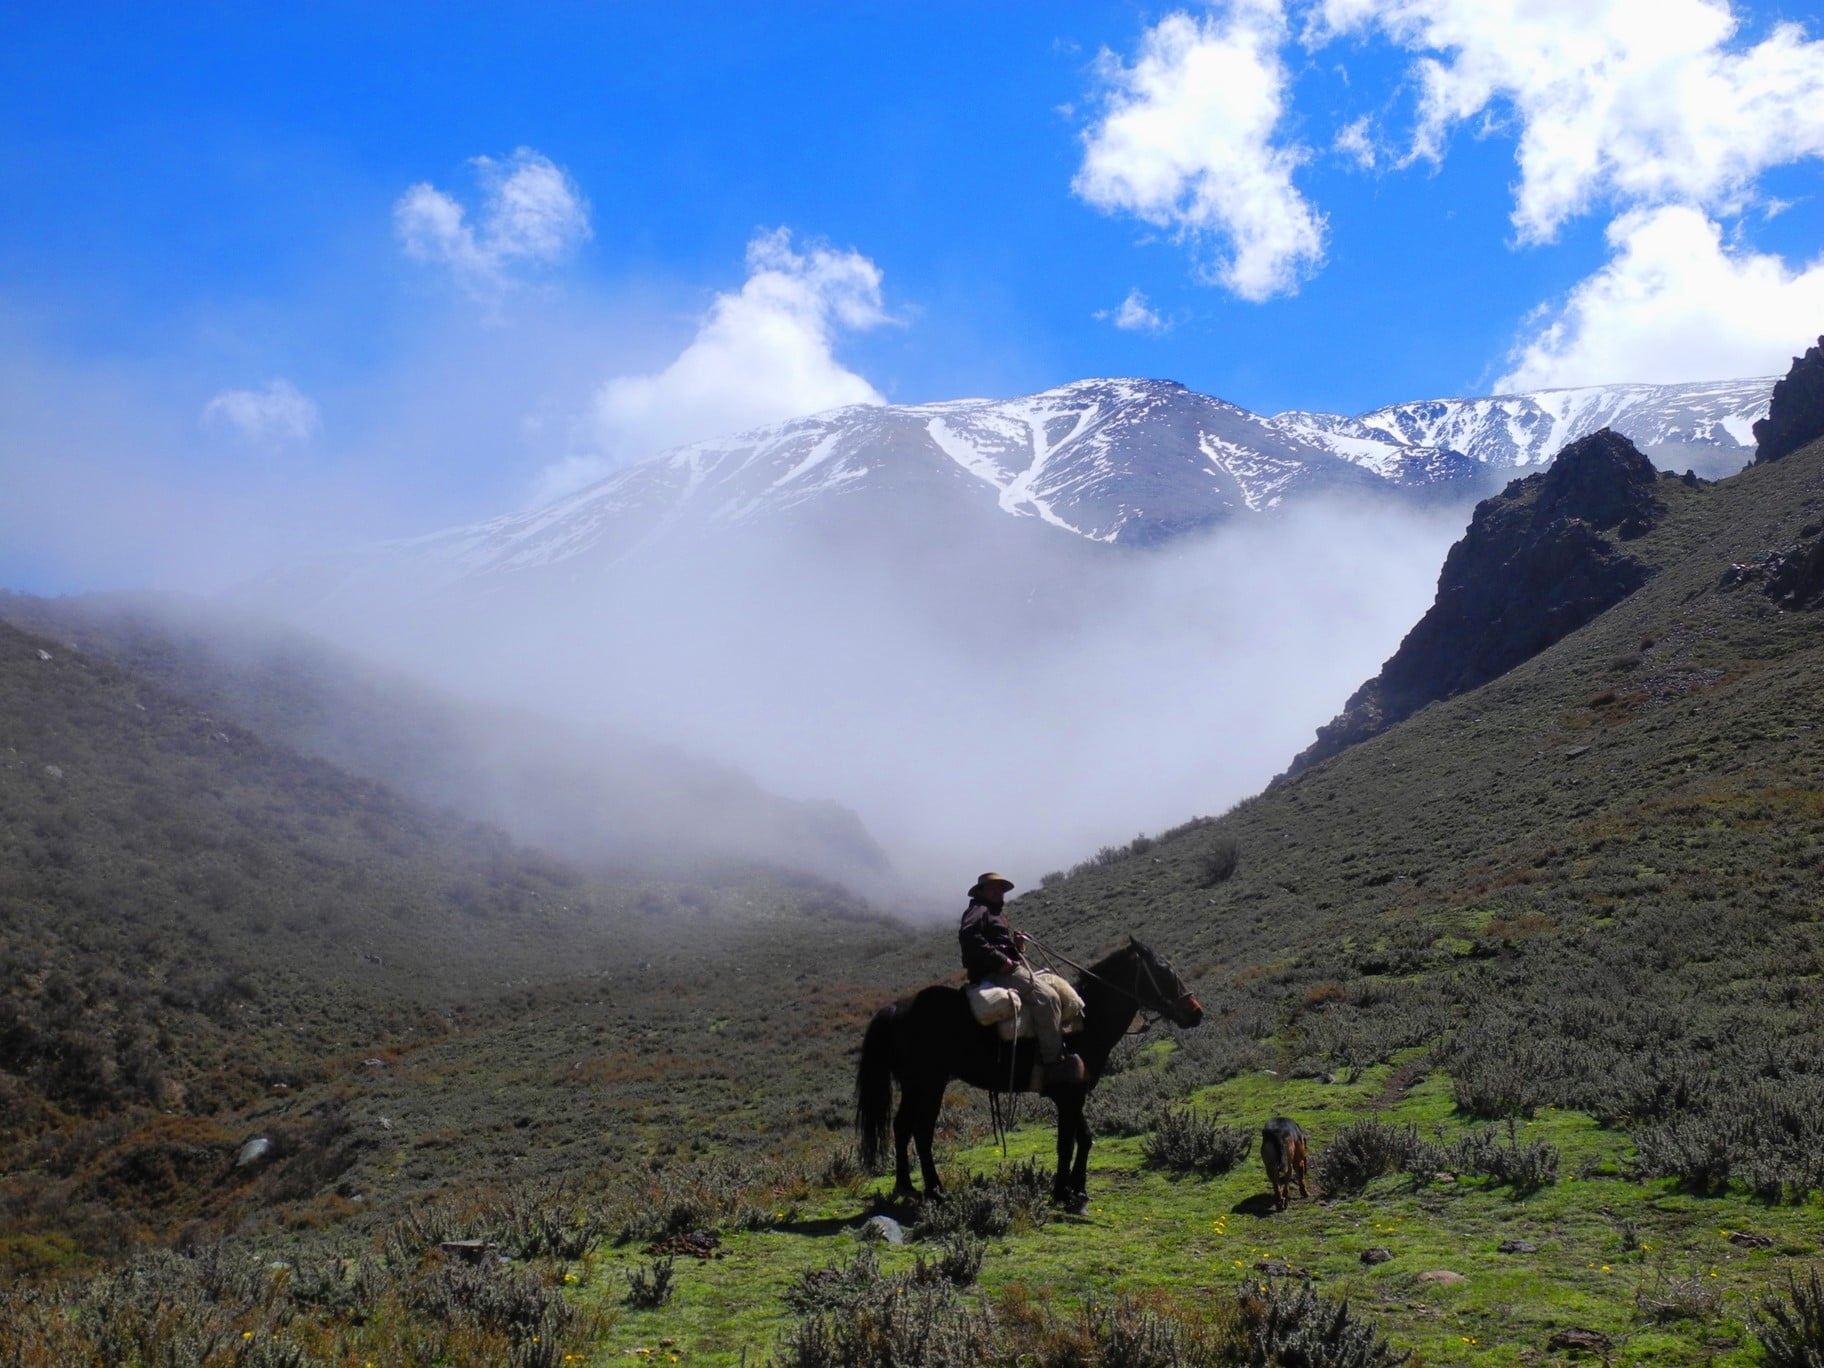 DREAMING OF BREATHTAKING LANDSCAPES?      HIKING      HORSEBACK RIDING      ROAD TRIP EXCURSION